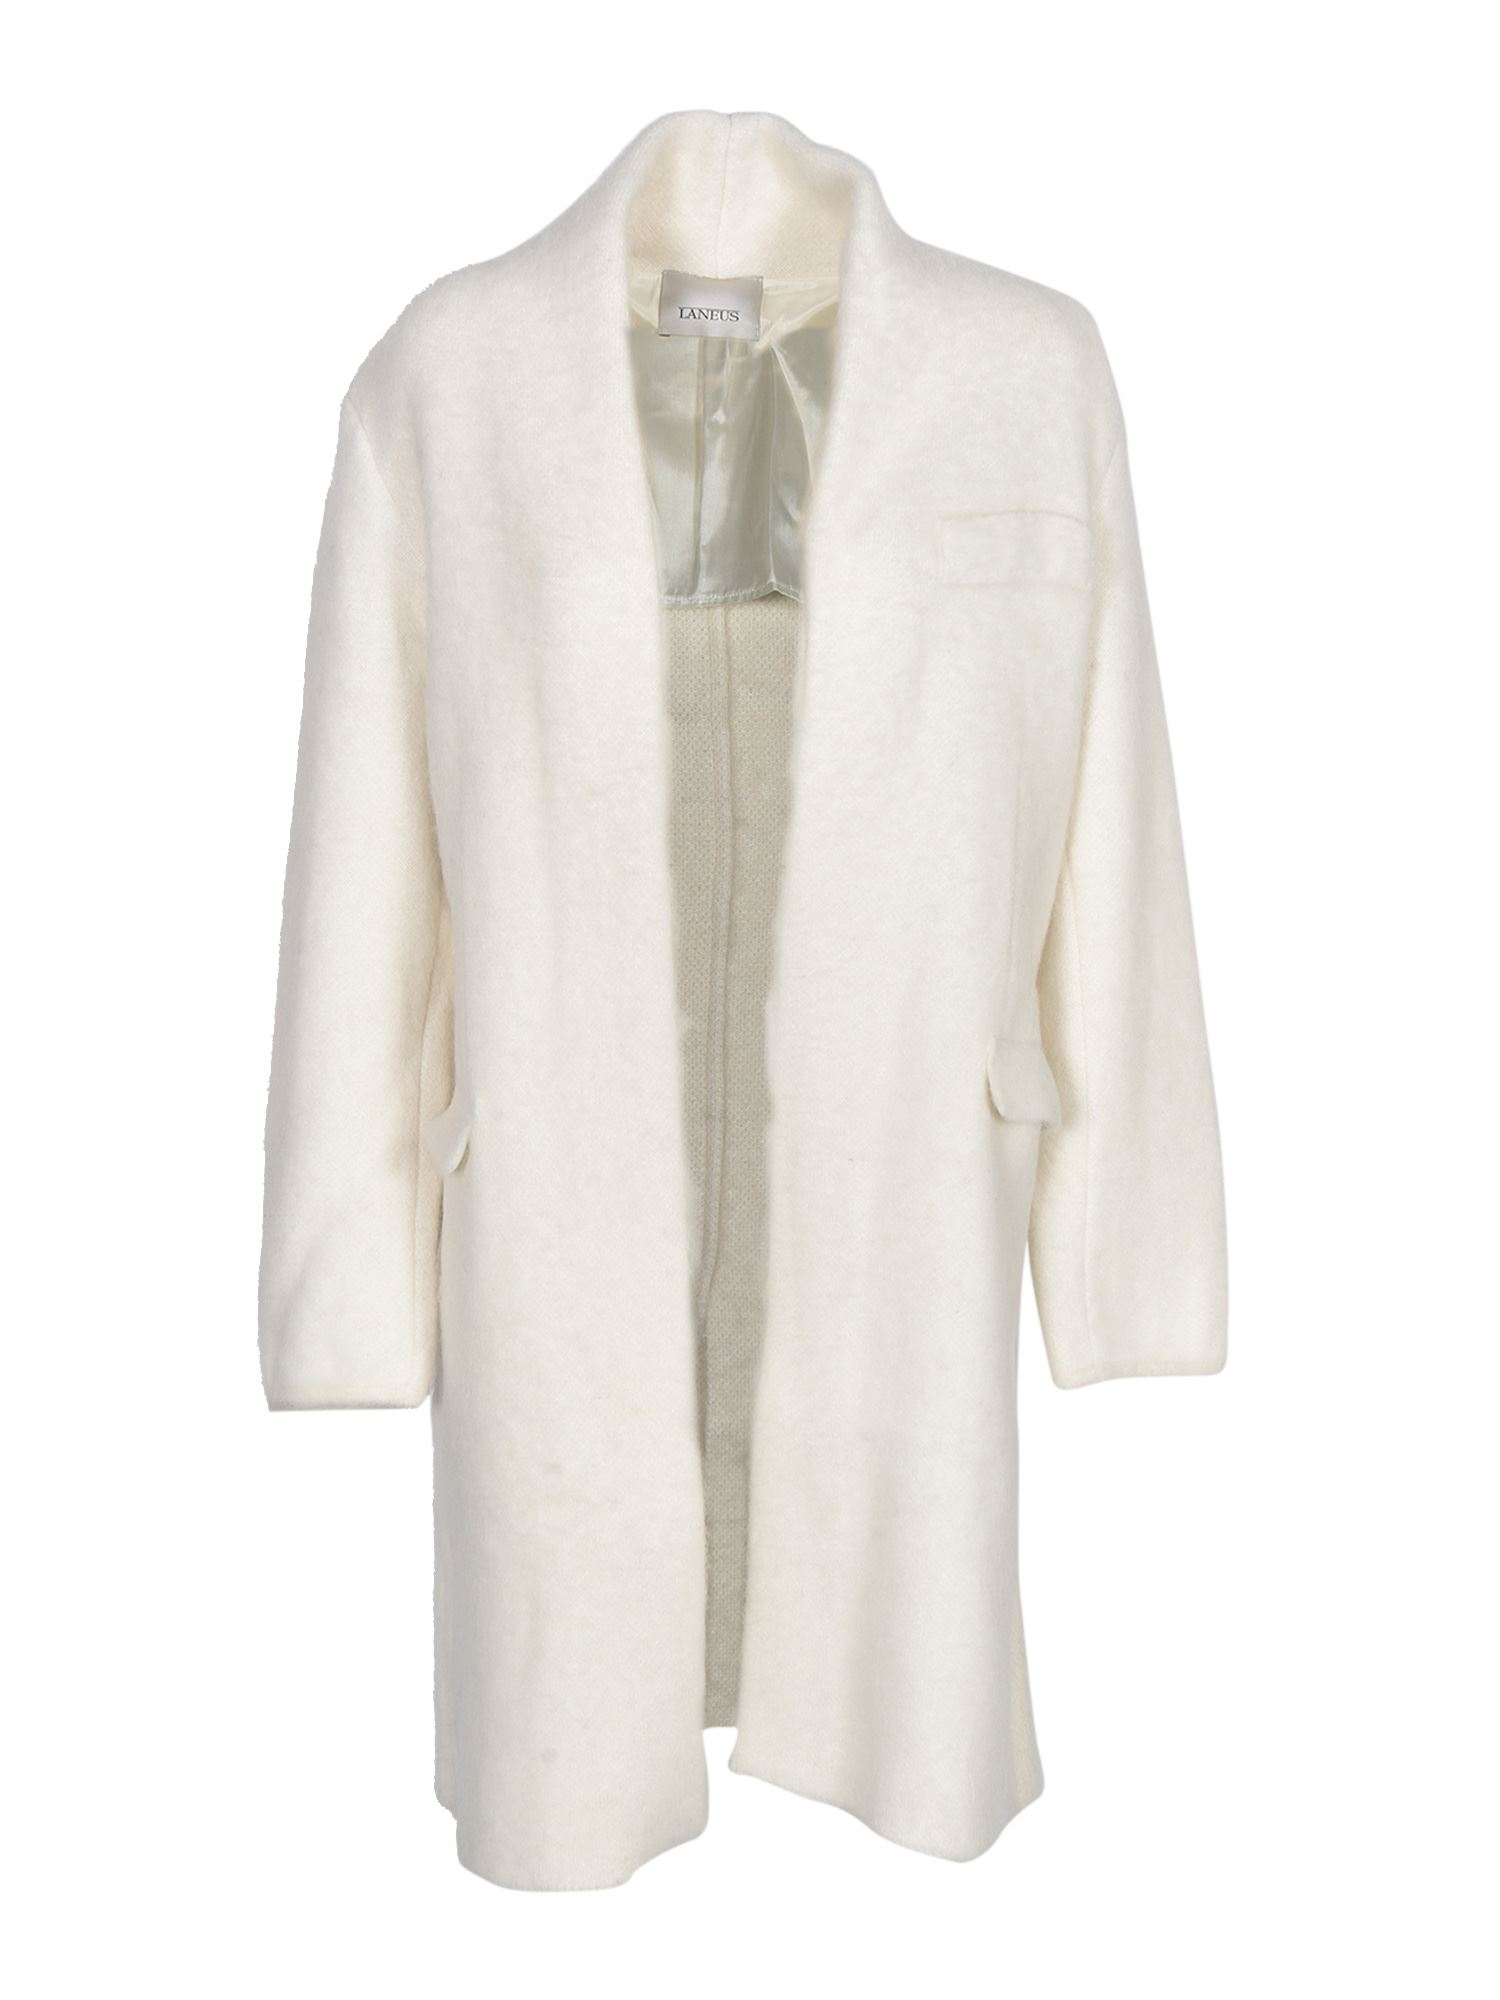 Laneus SINGLE-BREASTED COAT IN IVORY COLOR